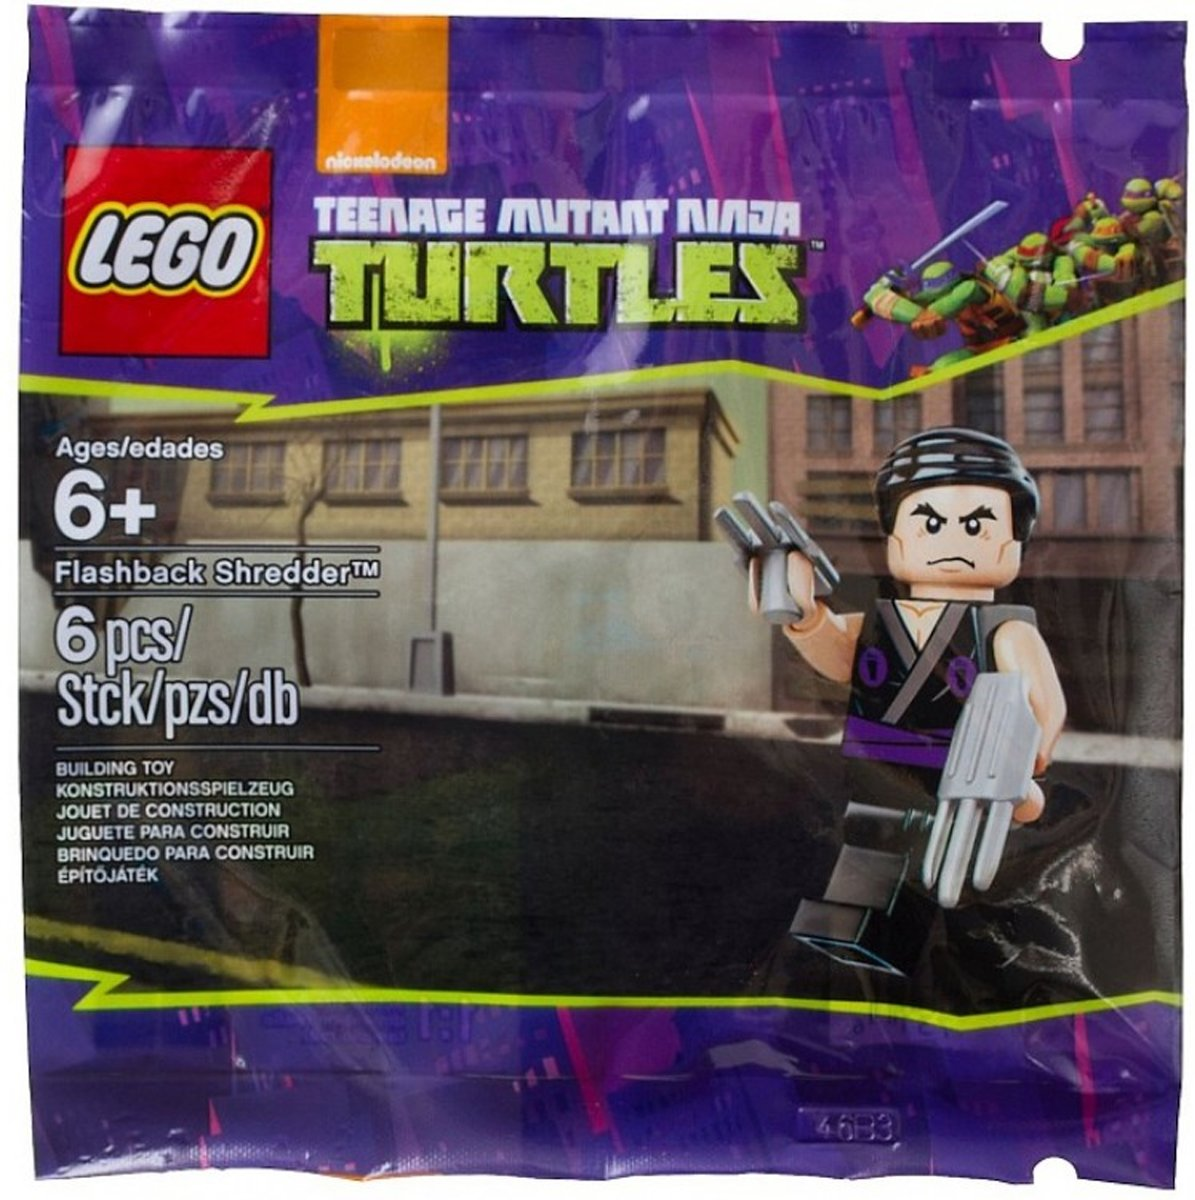 LEGO Ninja Turtles Flasback Shredder